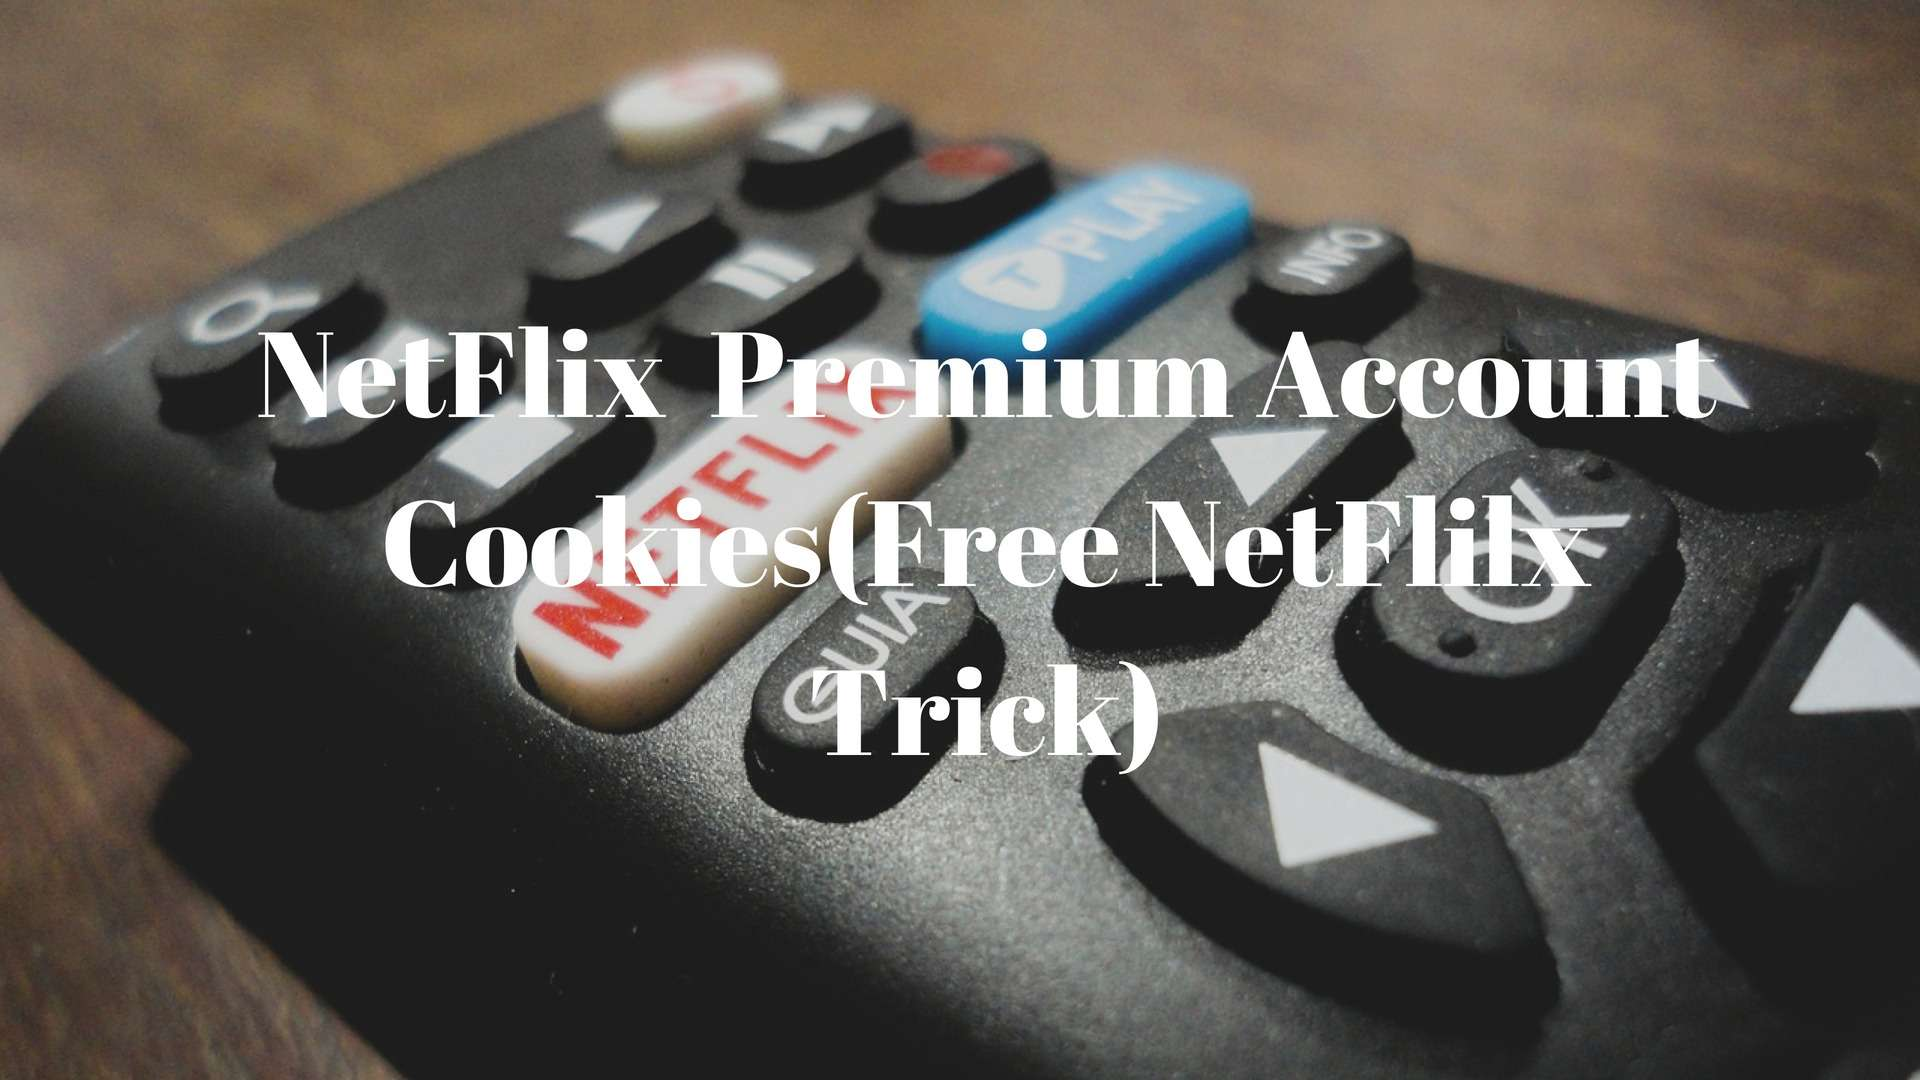 NetFlix Premium Account Cookies